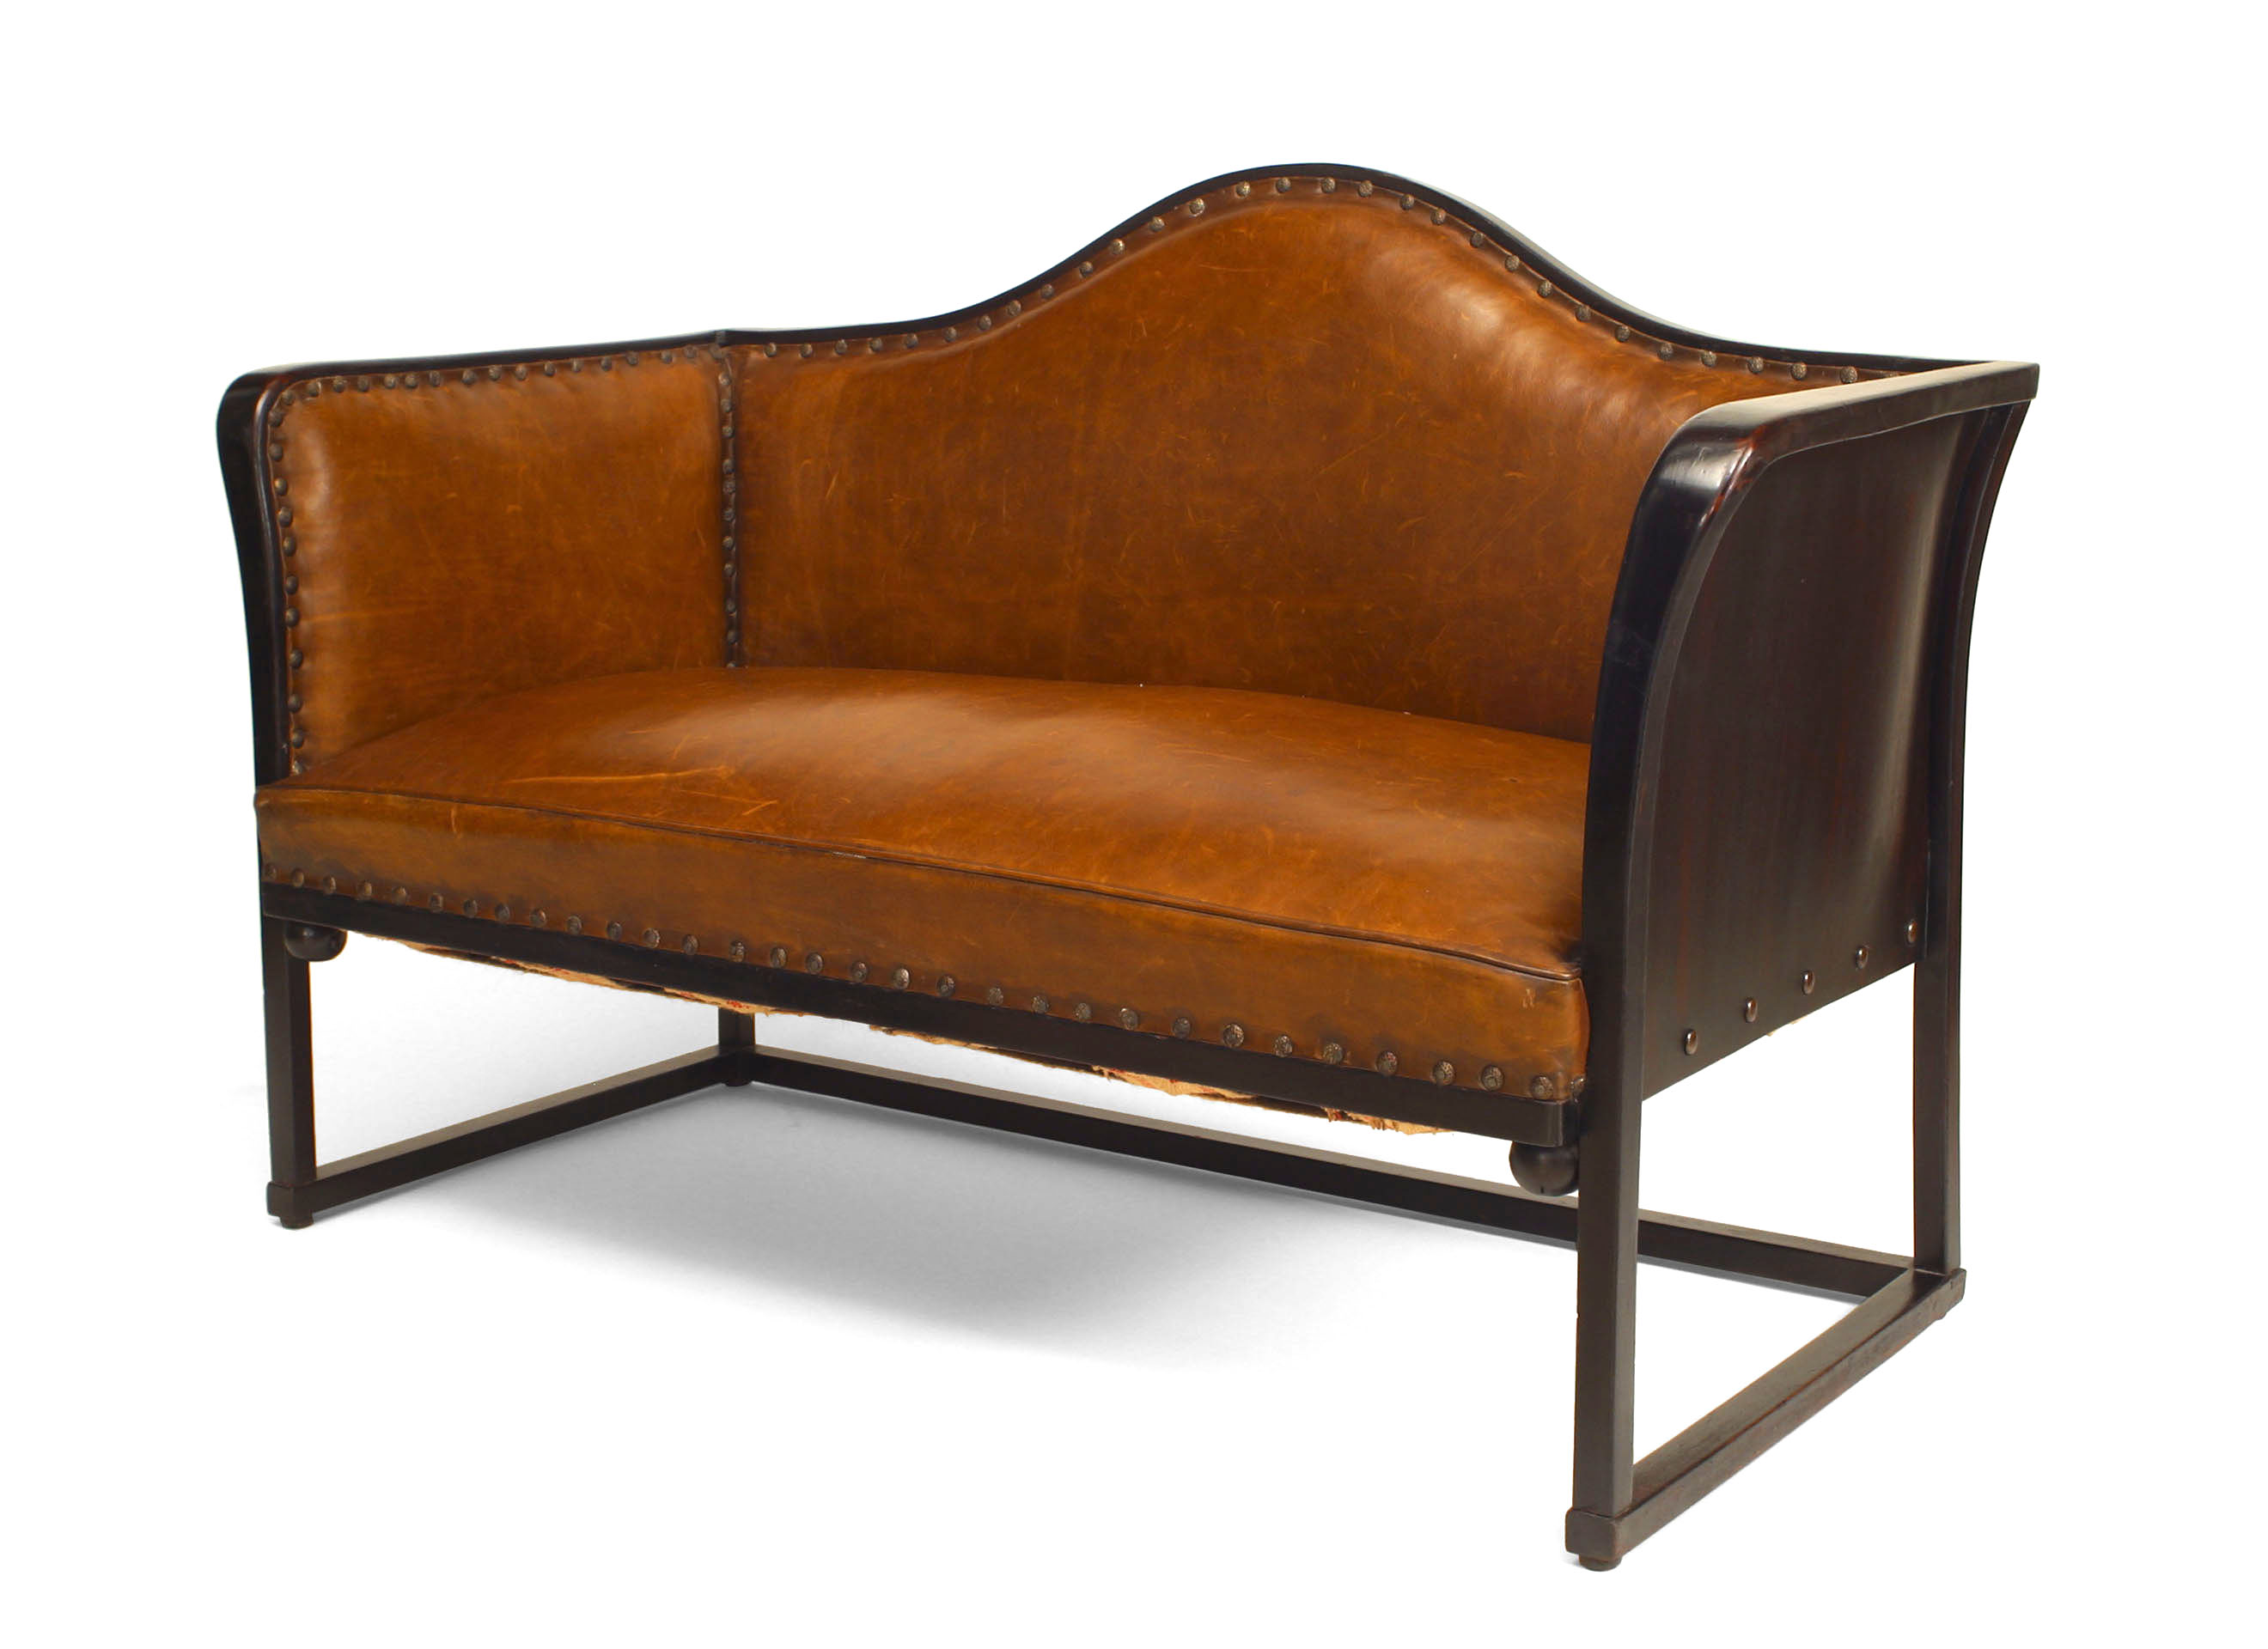 Strange Bentwood Secessionist Leather Loveseat Newel Onthecornerstone Fun Painted Chair Ideas Images Onthecornerstoneorg